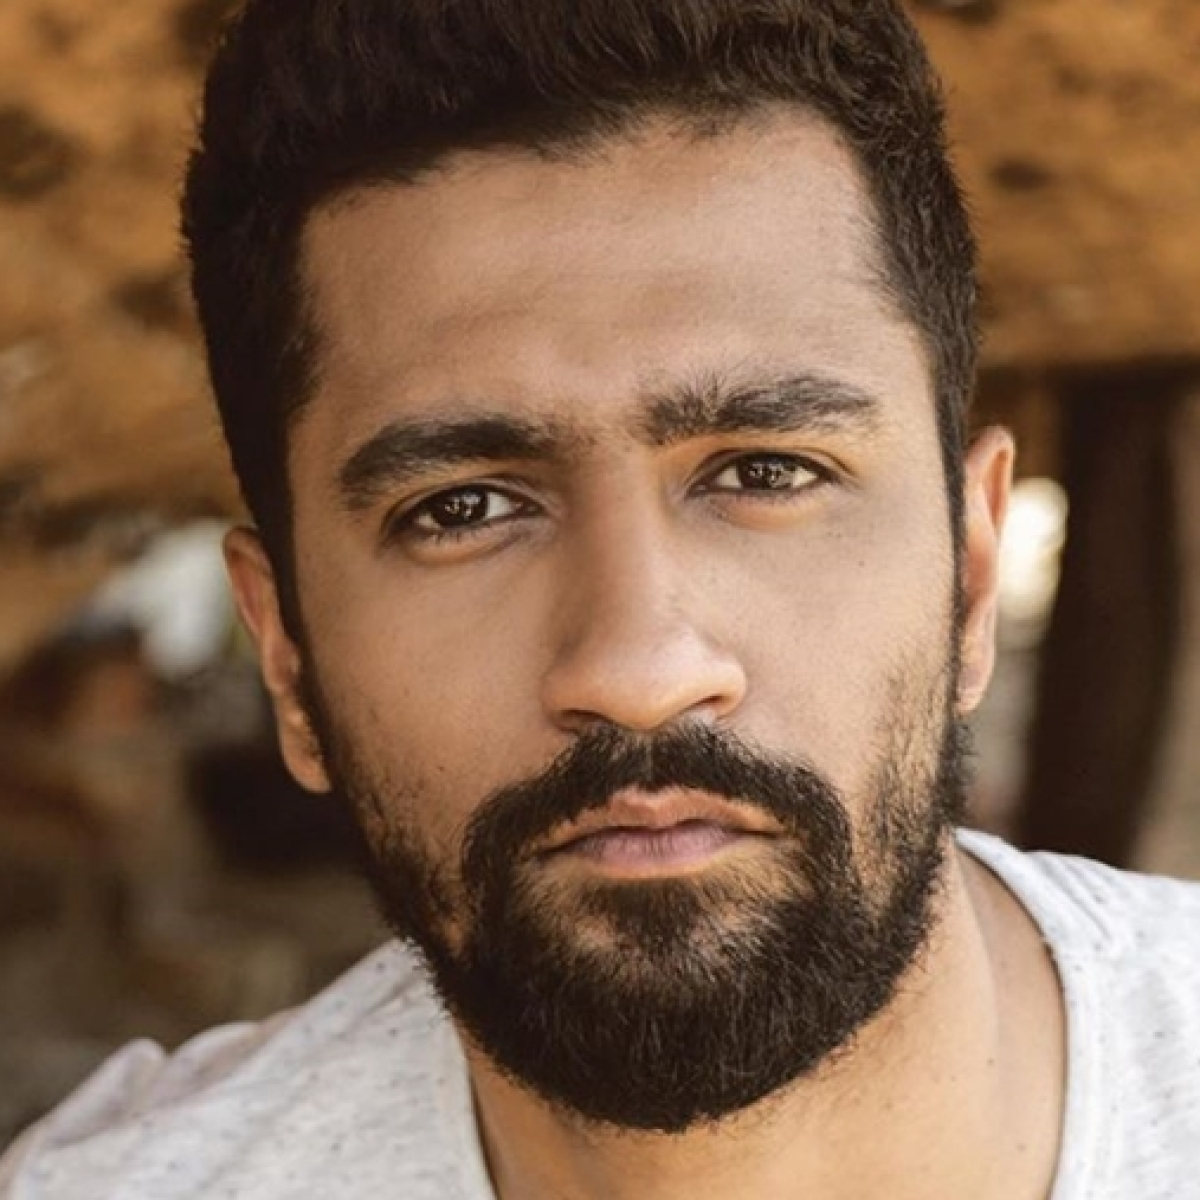 Vicky Kaushal turns 32, has a 'quiet' birthday amid COVID-19 lockdown